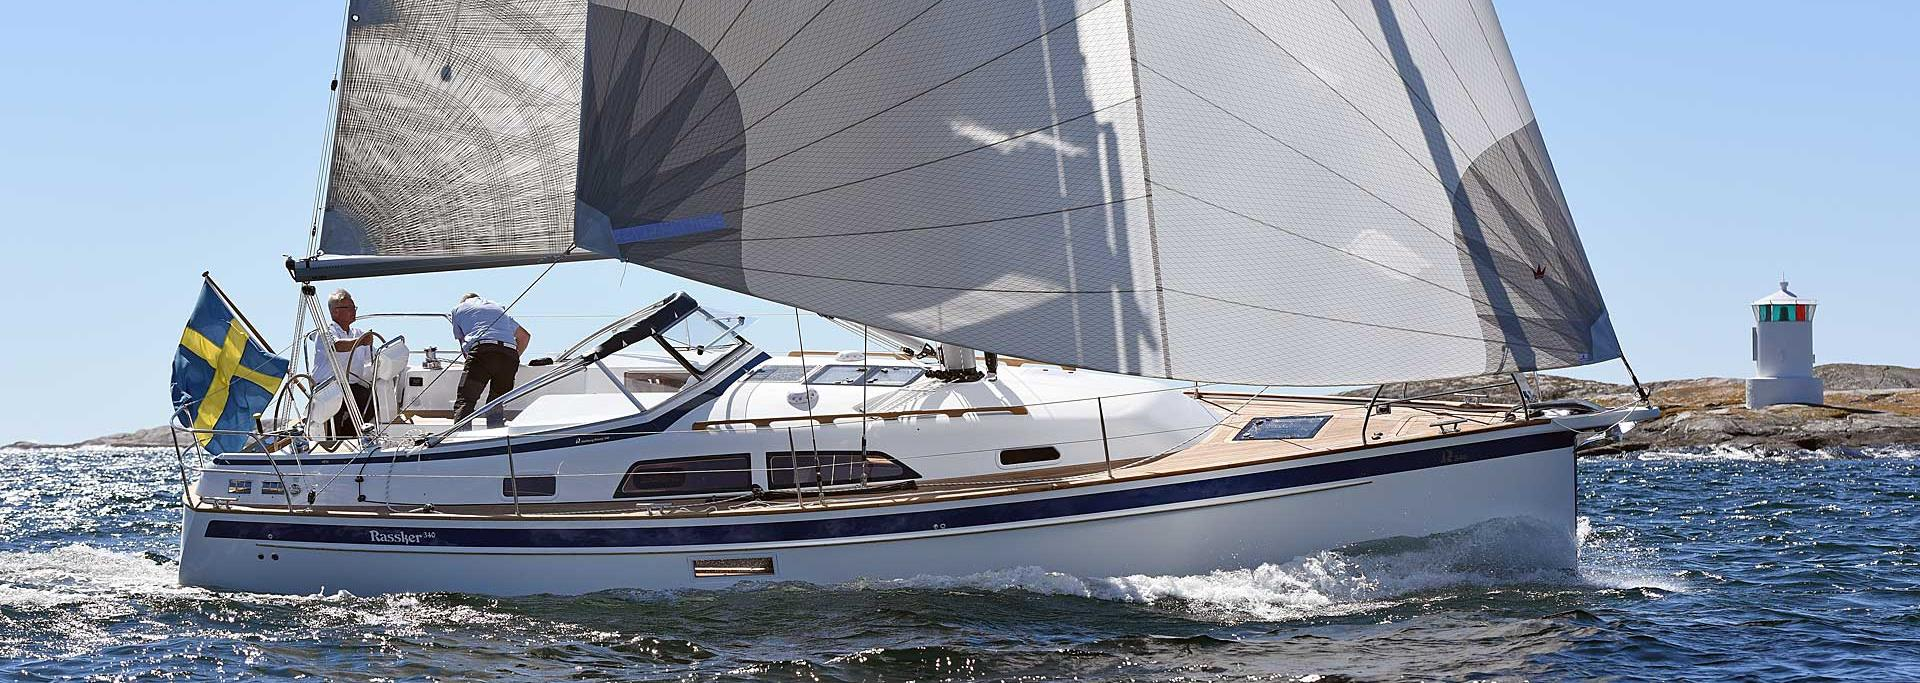 Hallberg-Rassy 340 at Yokohama Boat Show 2-4 October 2020